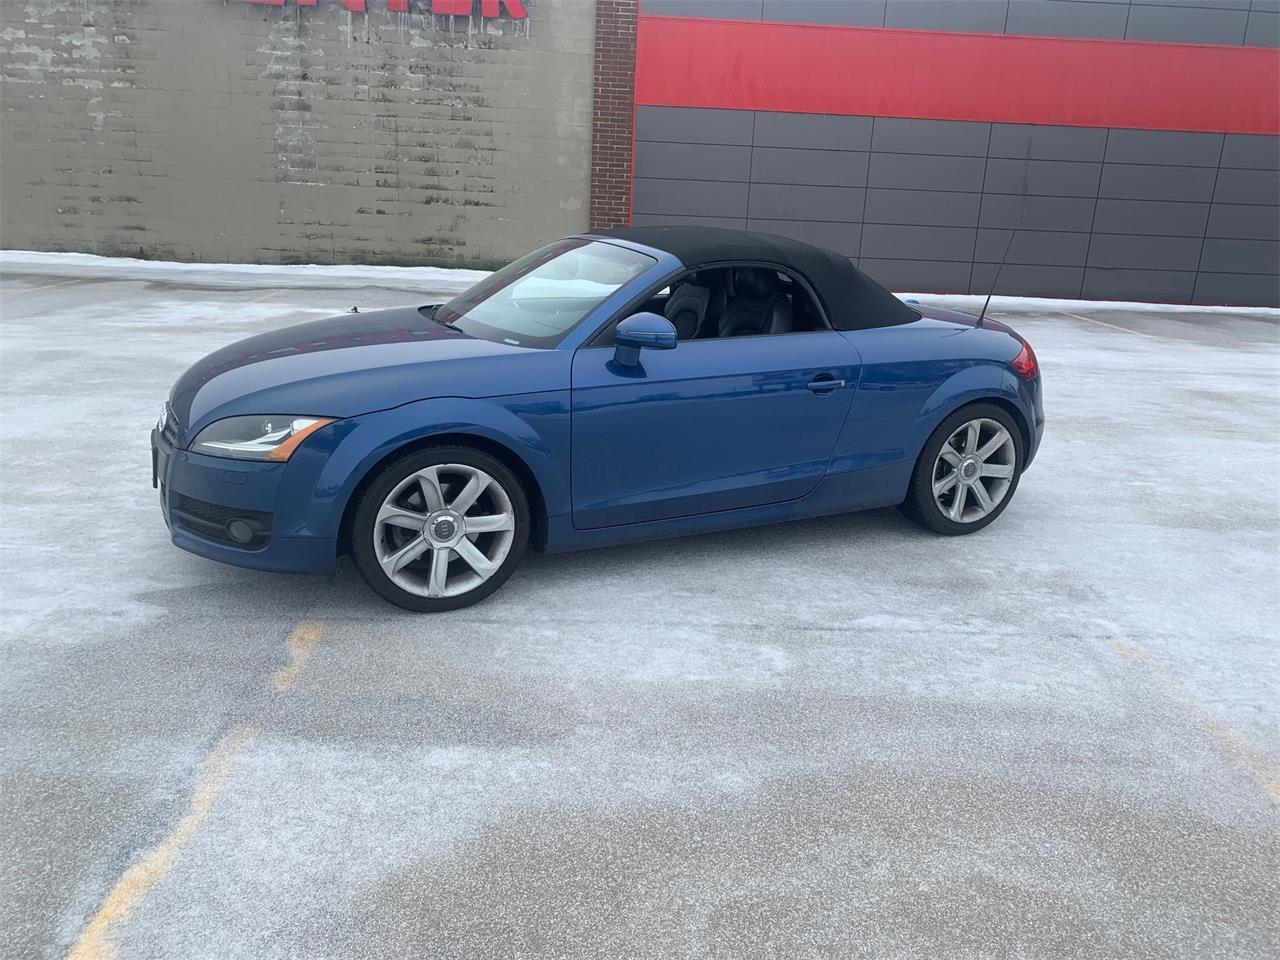 2008 Audi TT (CC-1313891) for sale in Annandale, Minnesota